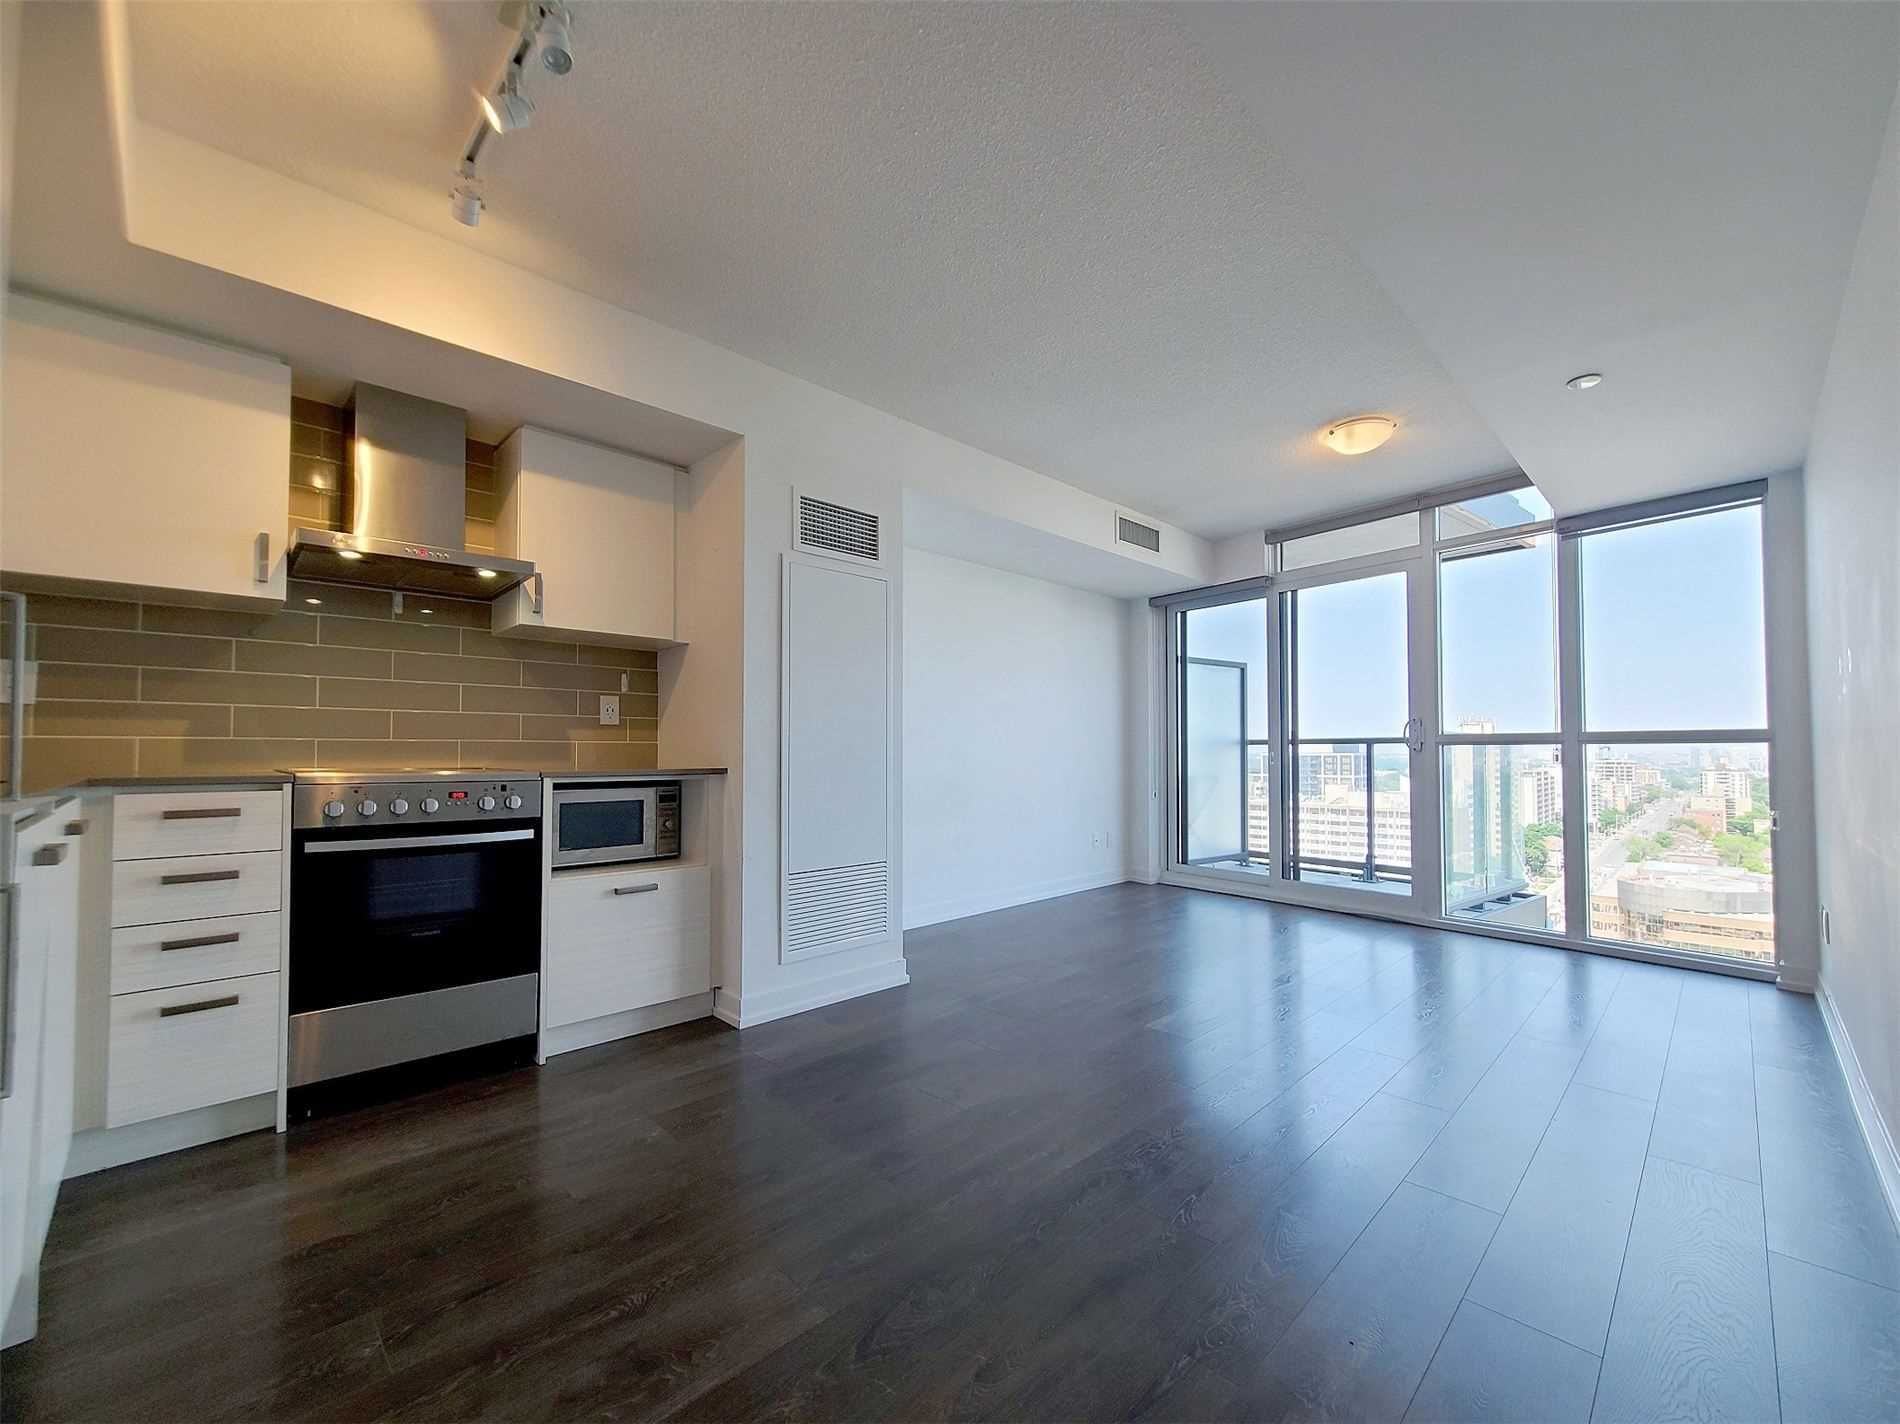 125 Redpath Ave, unit 1612 for rent in Toronto - image #1